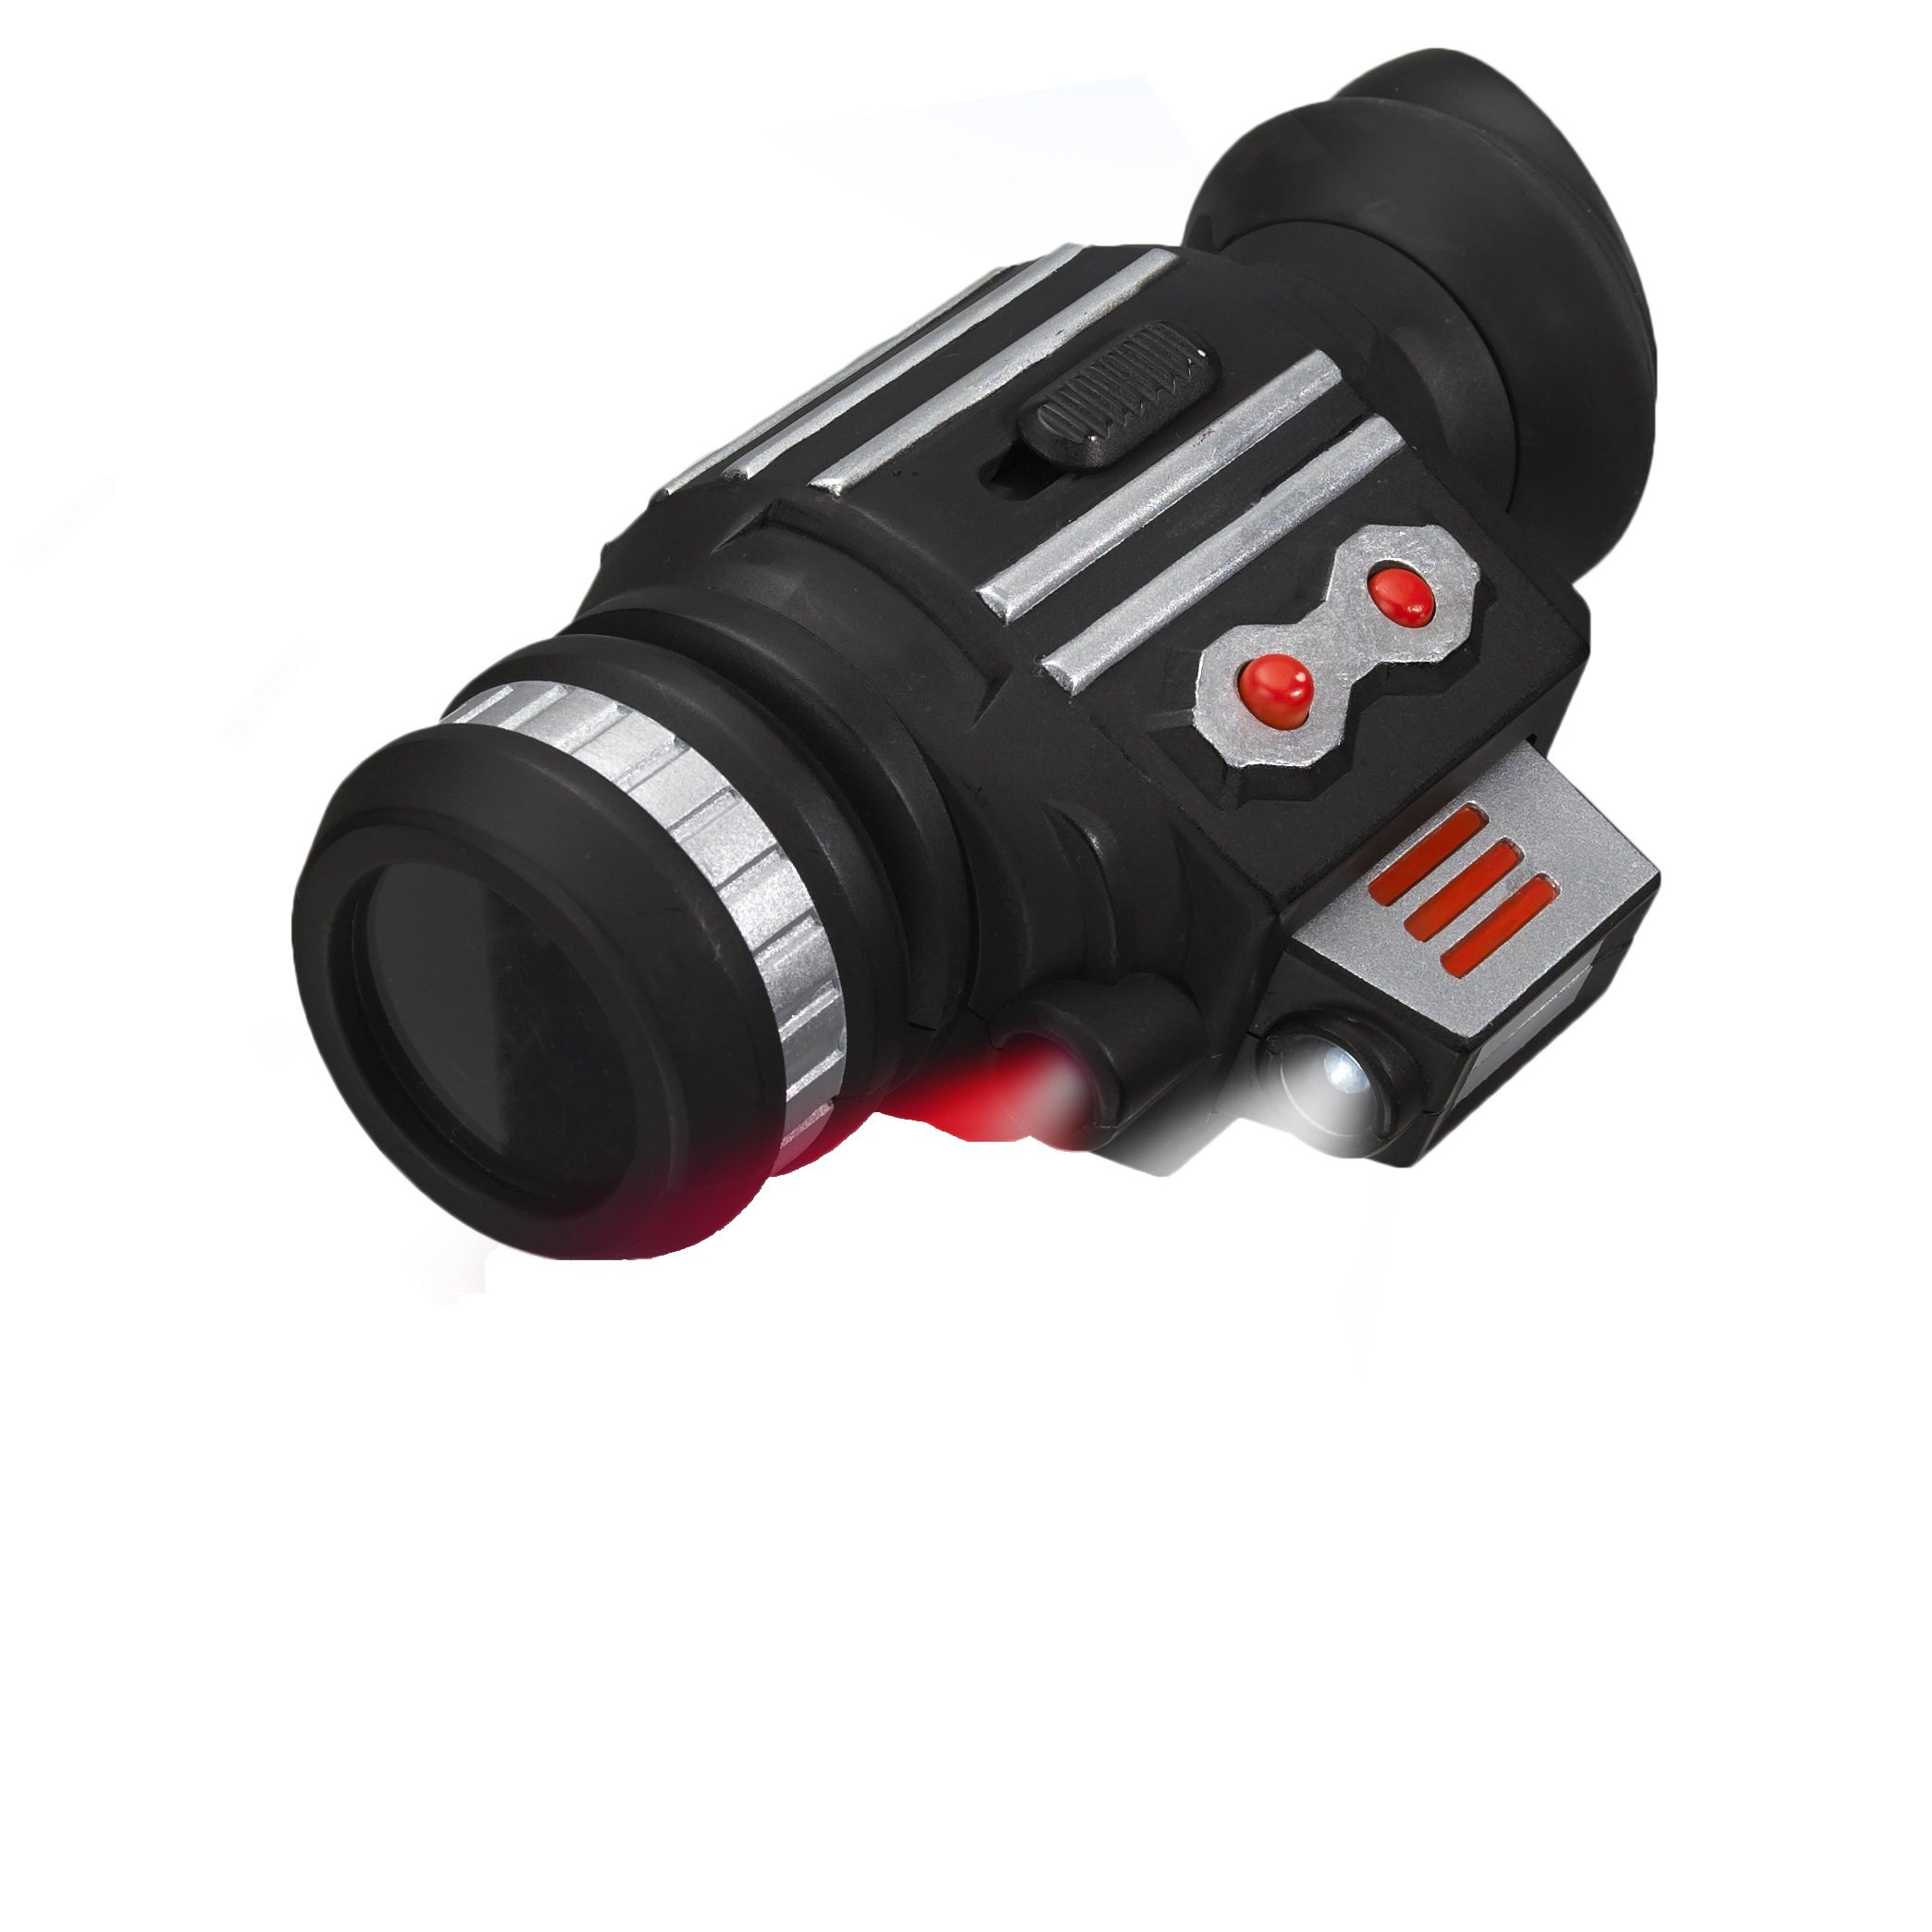 SpyX MukikiM Power Scope - Powerful Monocular Spy Toy to See Up to 25 ft. away, even in the Dark using the Red OR White Light. Perfect addition for your spy gear collection!